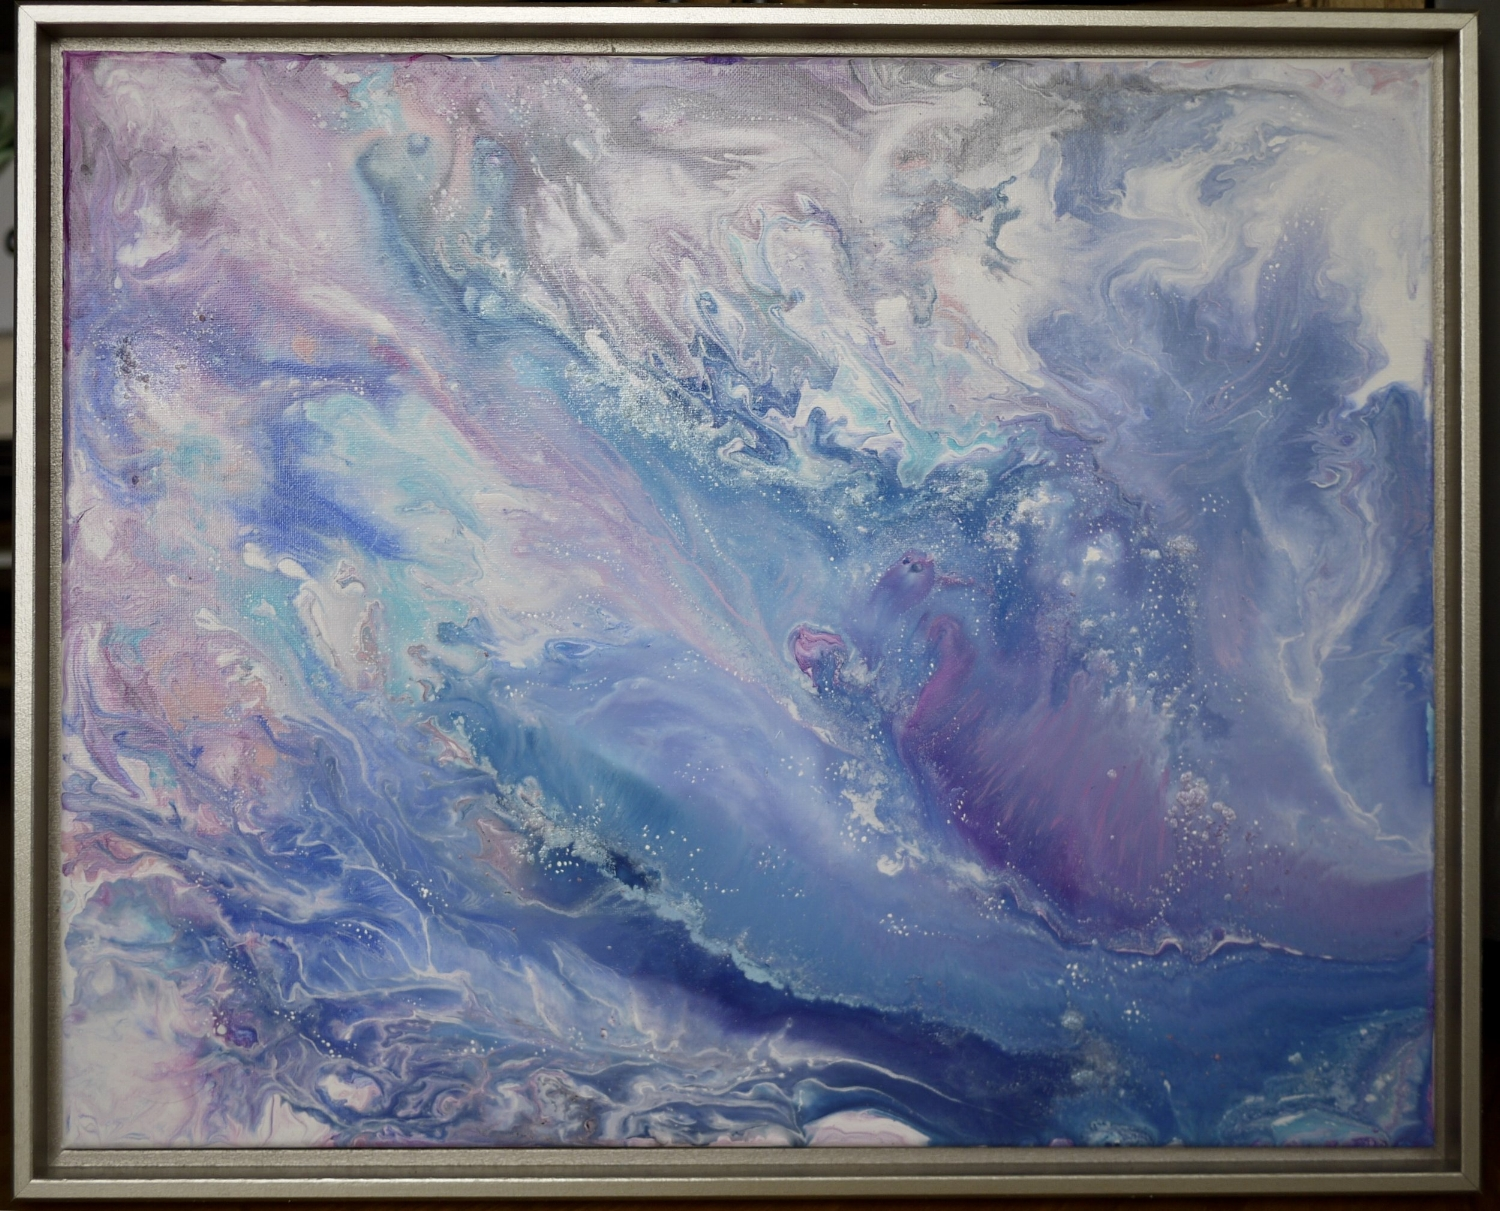 SERENITY  16x20 inches  Mixed media on canvas